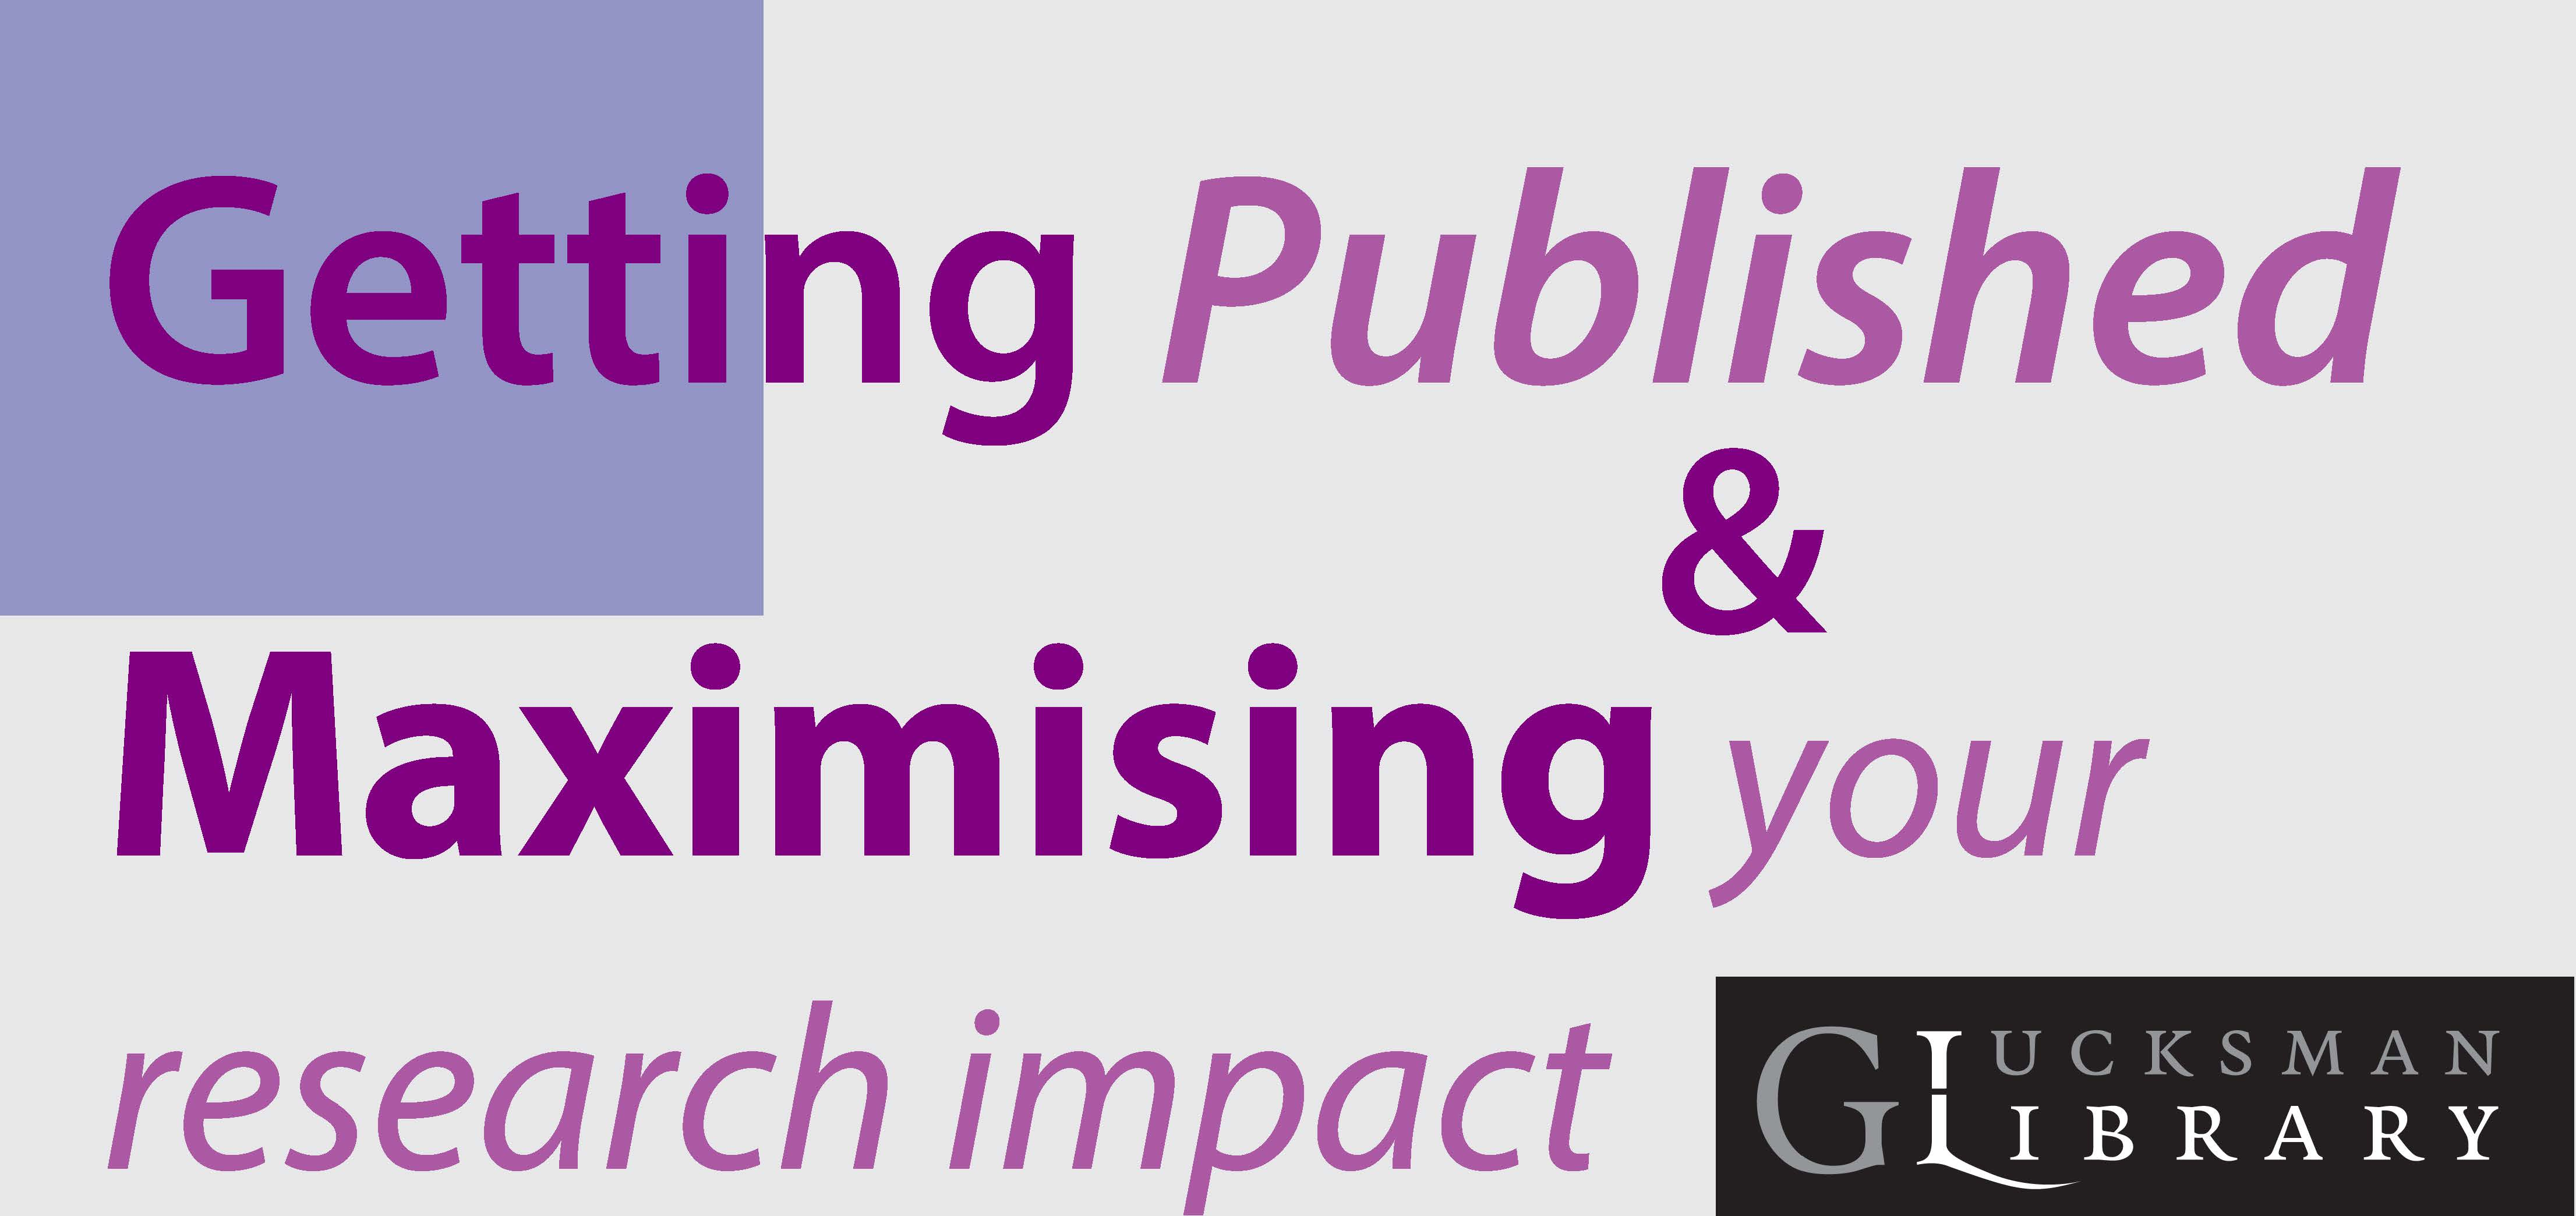 Getting Published & Maximising your Research Impact